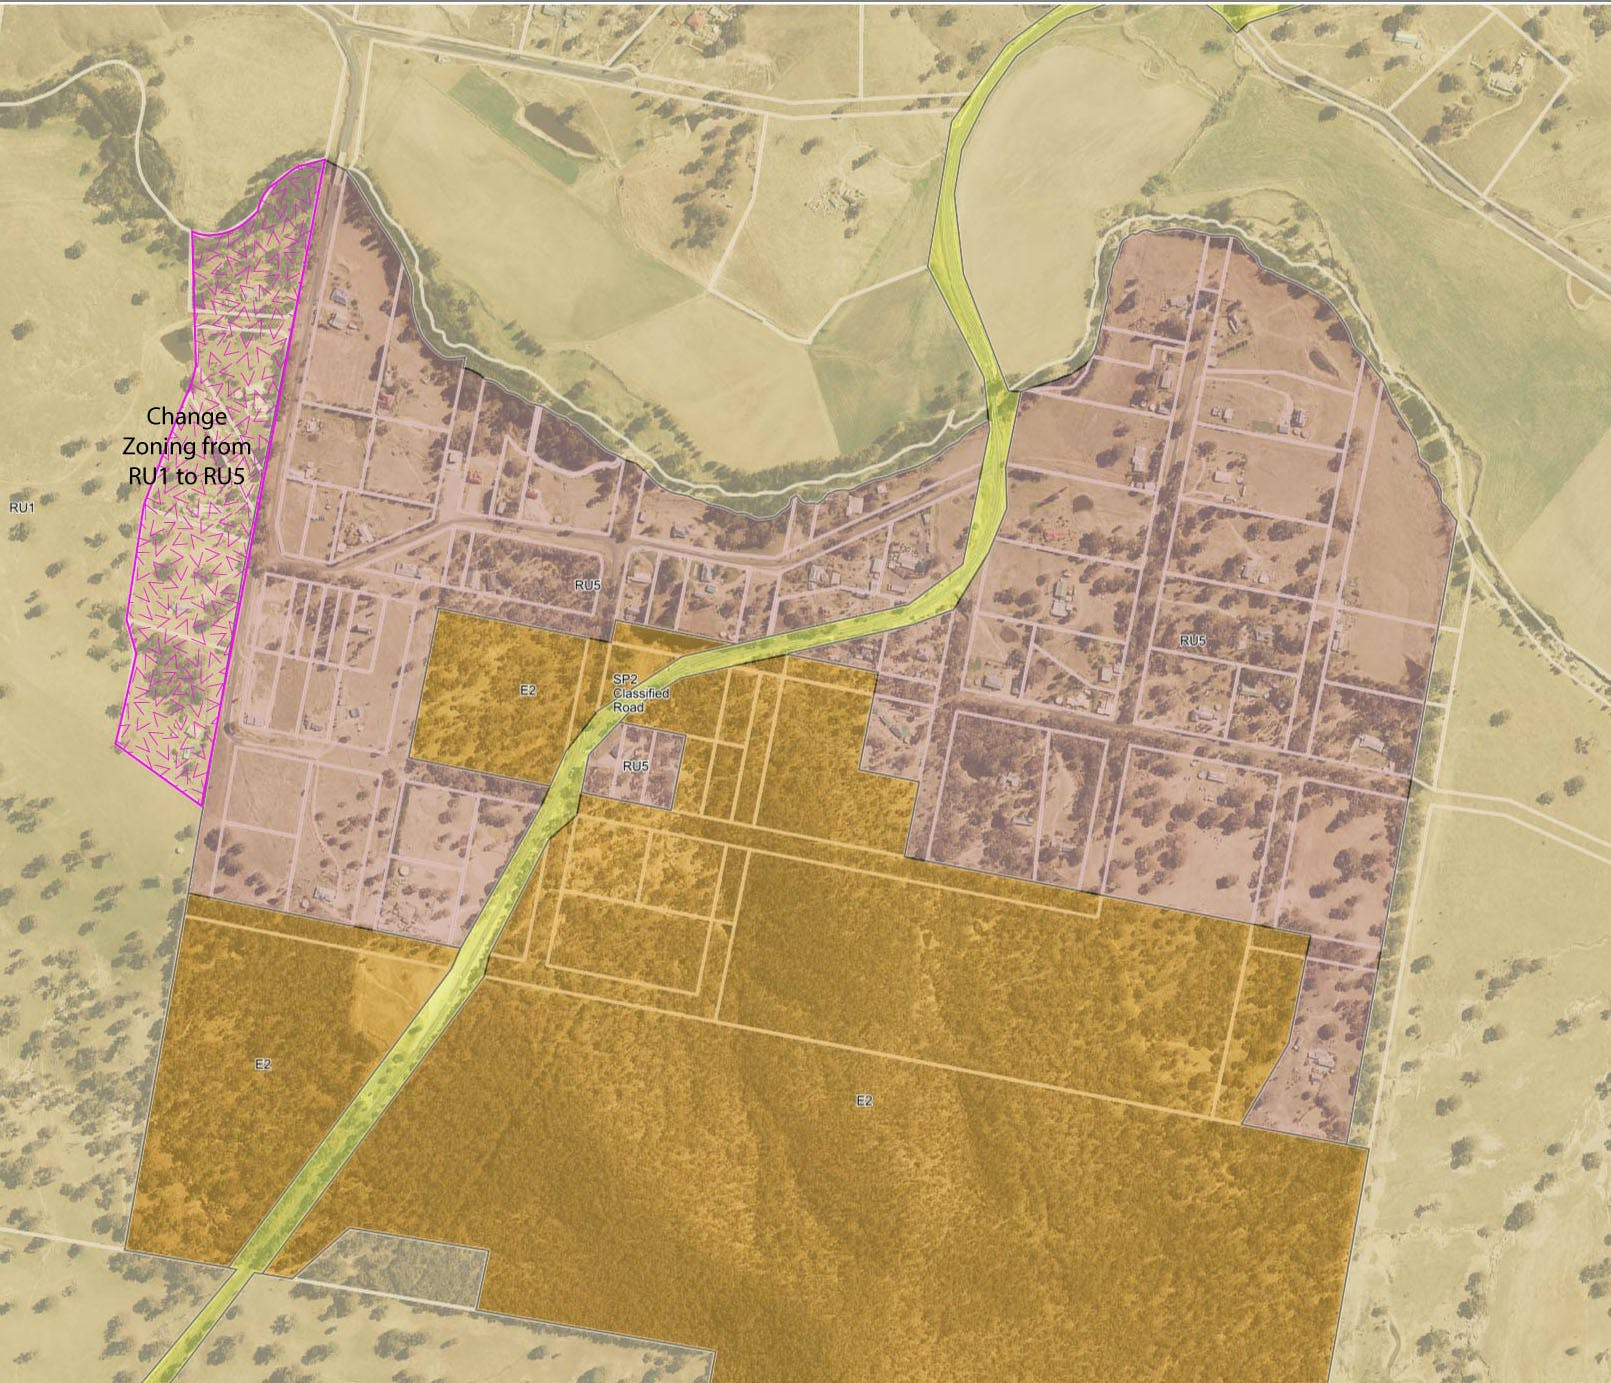 Proposed Changes to Land Use Zoning